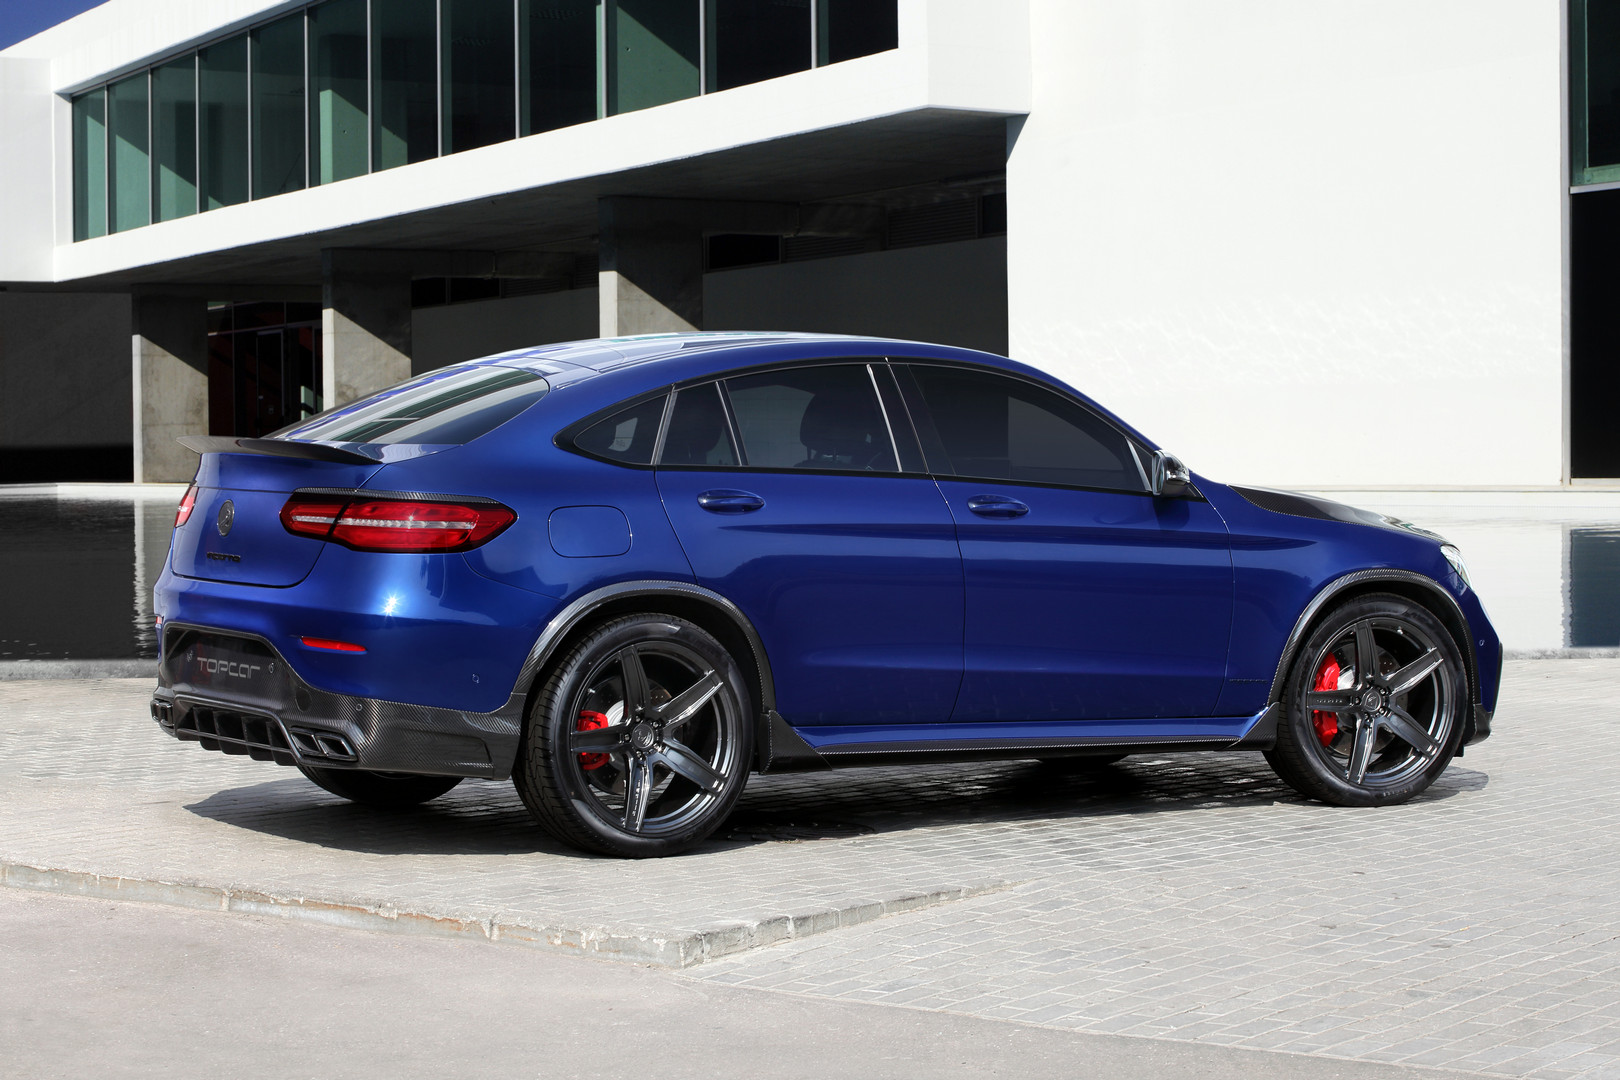 TopCar Gives Mercedes-Benz GLC Coupe New Look - GTspirit